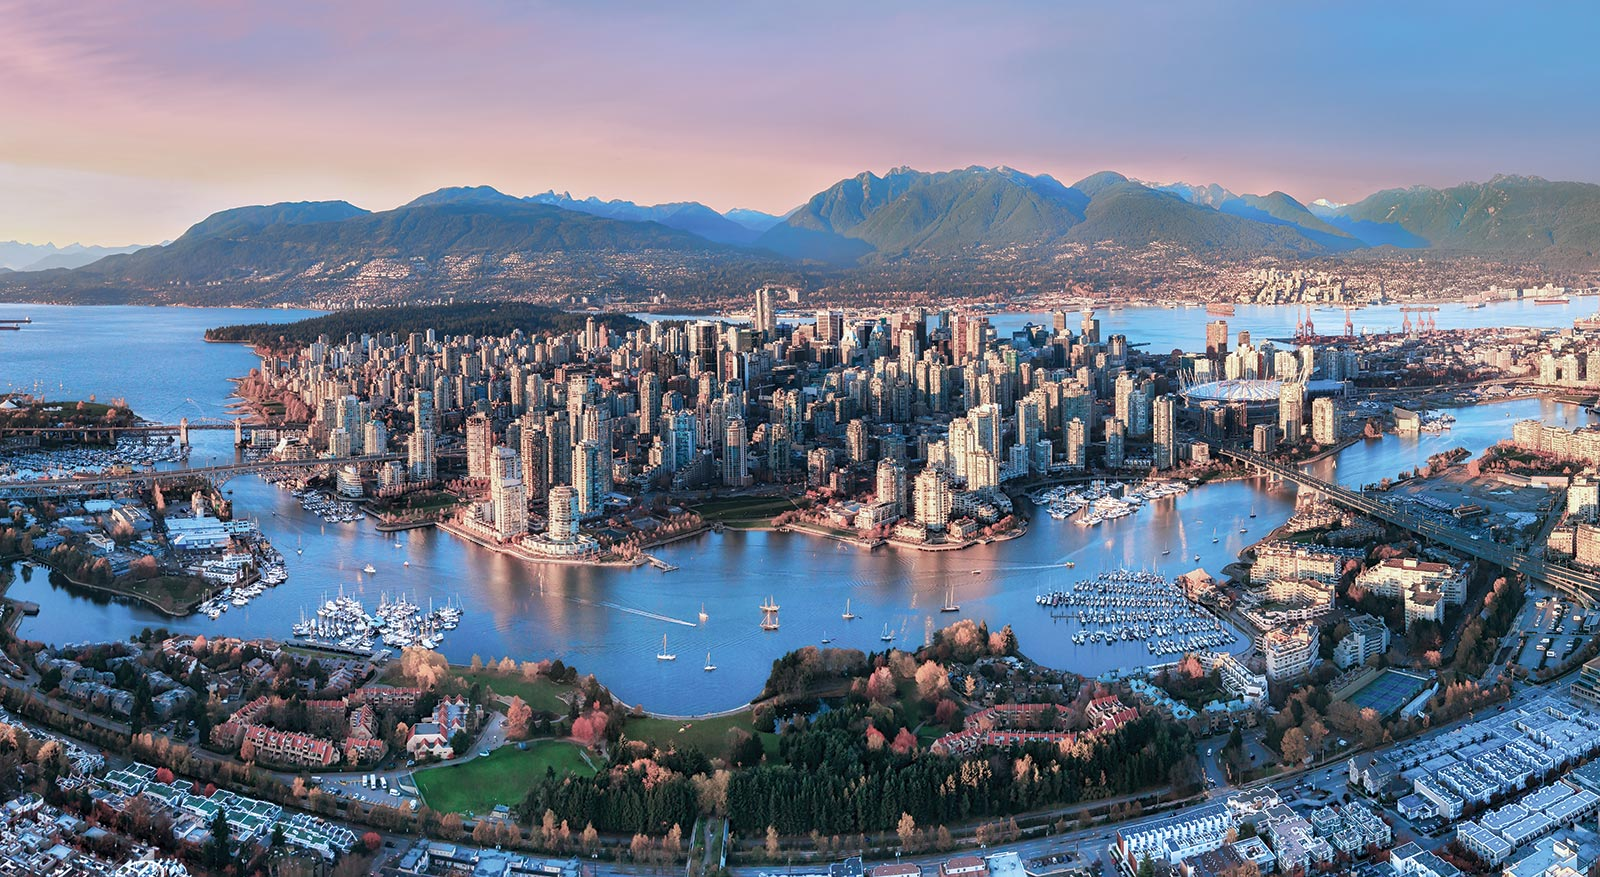 Vancouver - Vancouver, a bustling west coast seaport in British Columbia, is among Canada's densest, most ethnically diverse cities. A popular filming location, it's surrounded by mountains, and also has thriving art, theatre and music scenes. Vancouver Art Gallery is known for its works by regional artists, while the Museum of Anthropology houses preeminent First Nations collections.